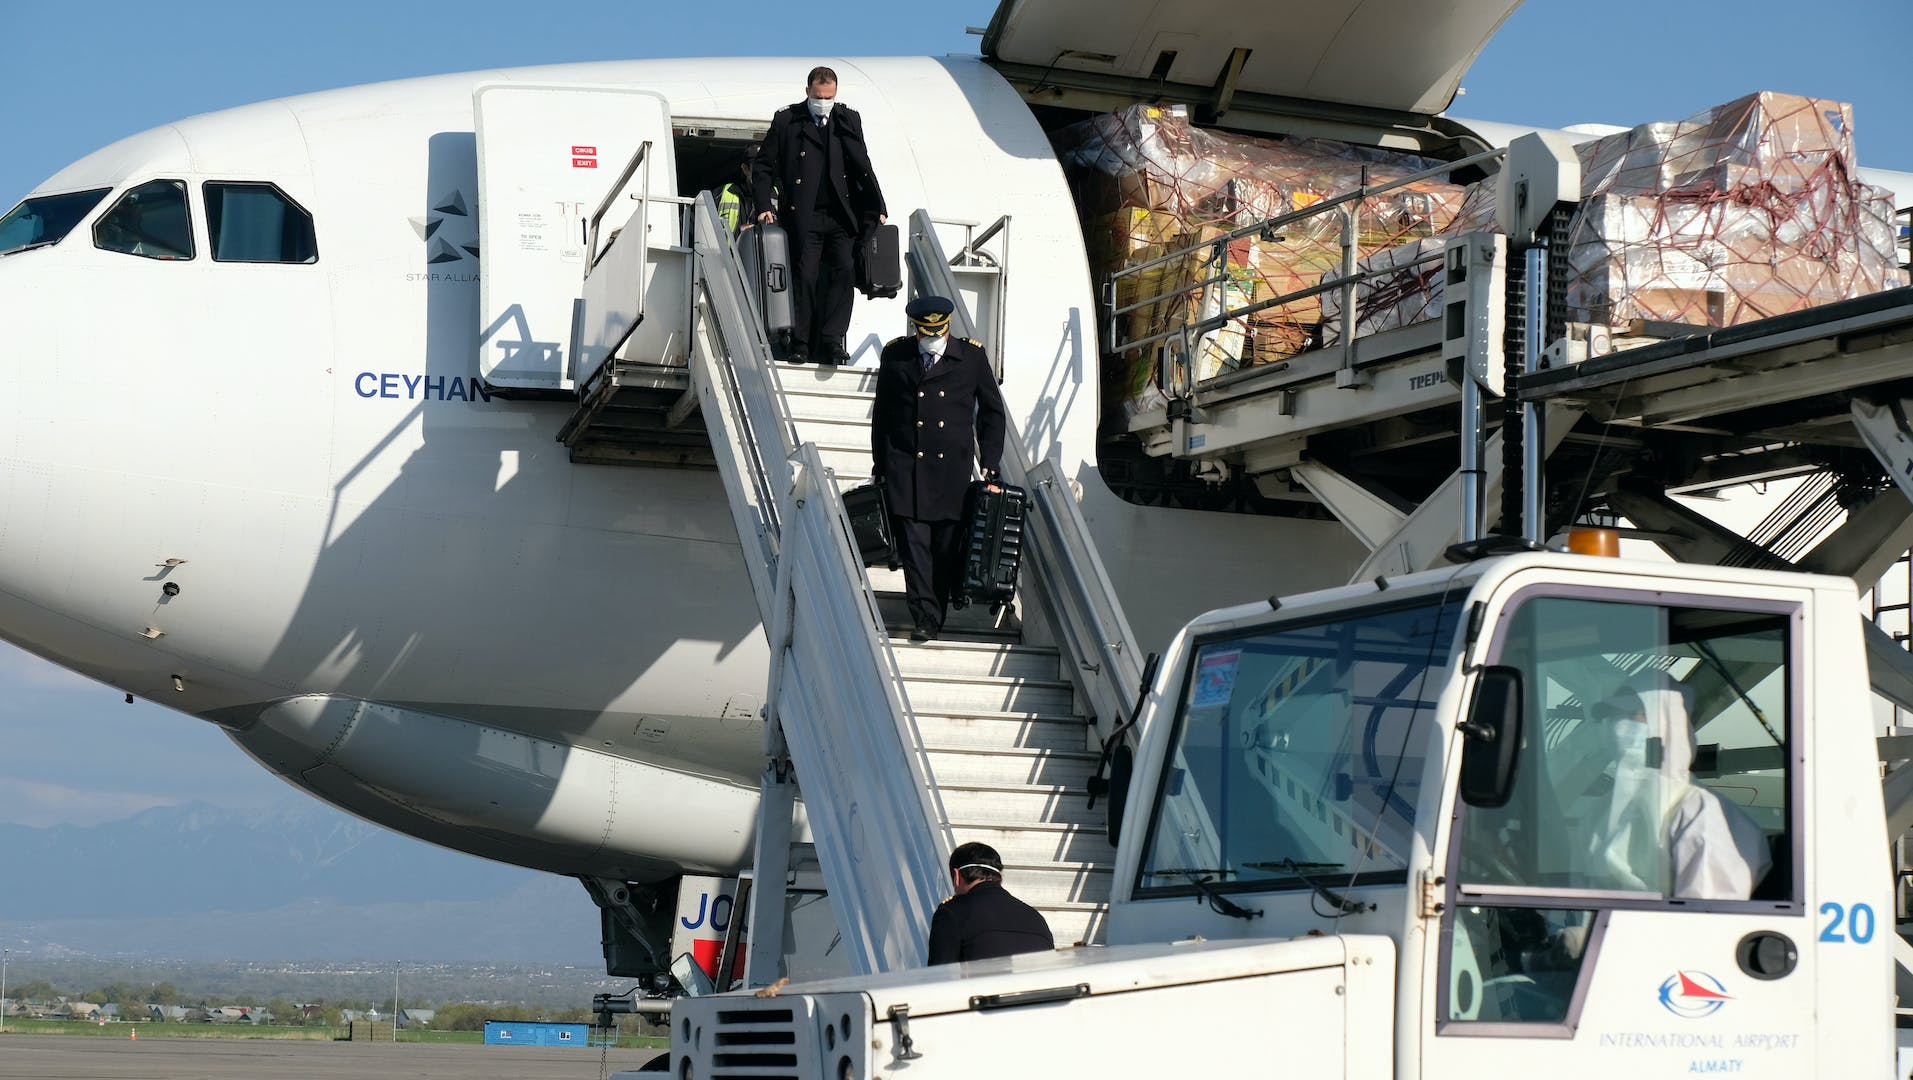 Staff remove humanitarian aid cargo from a privately chartered flight.